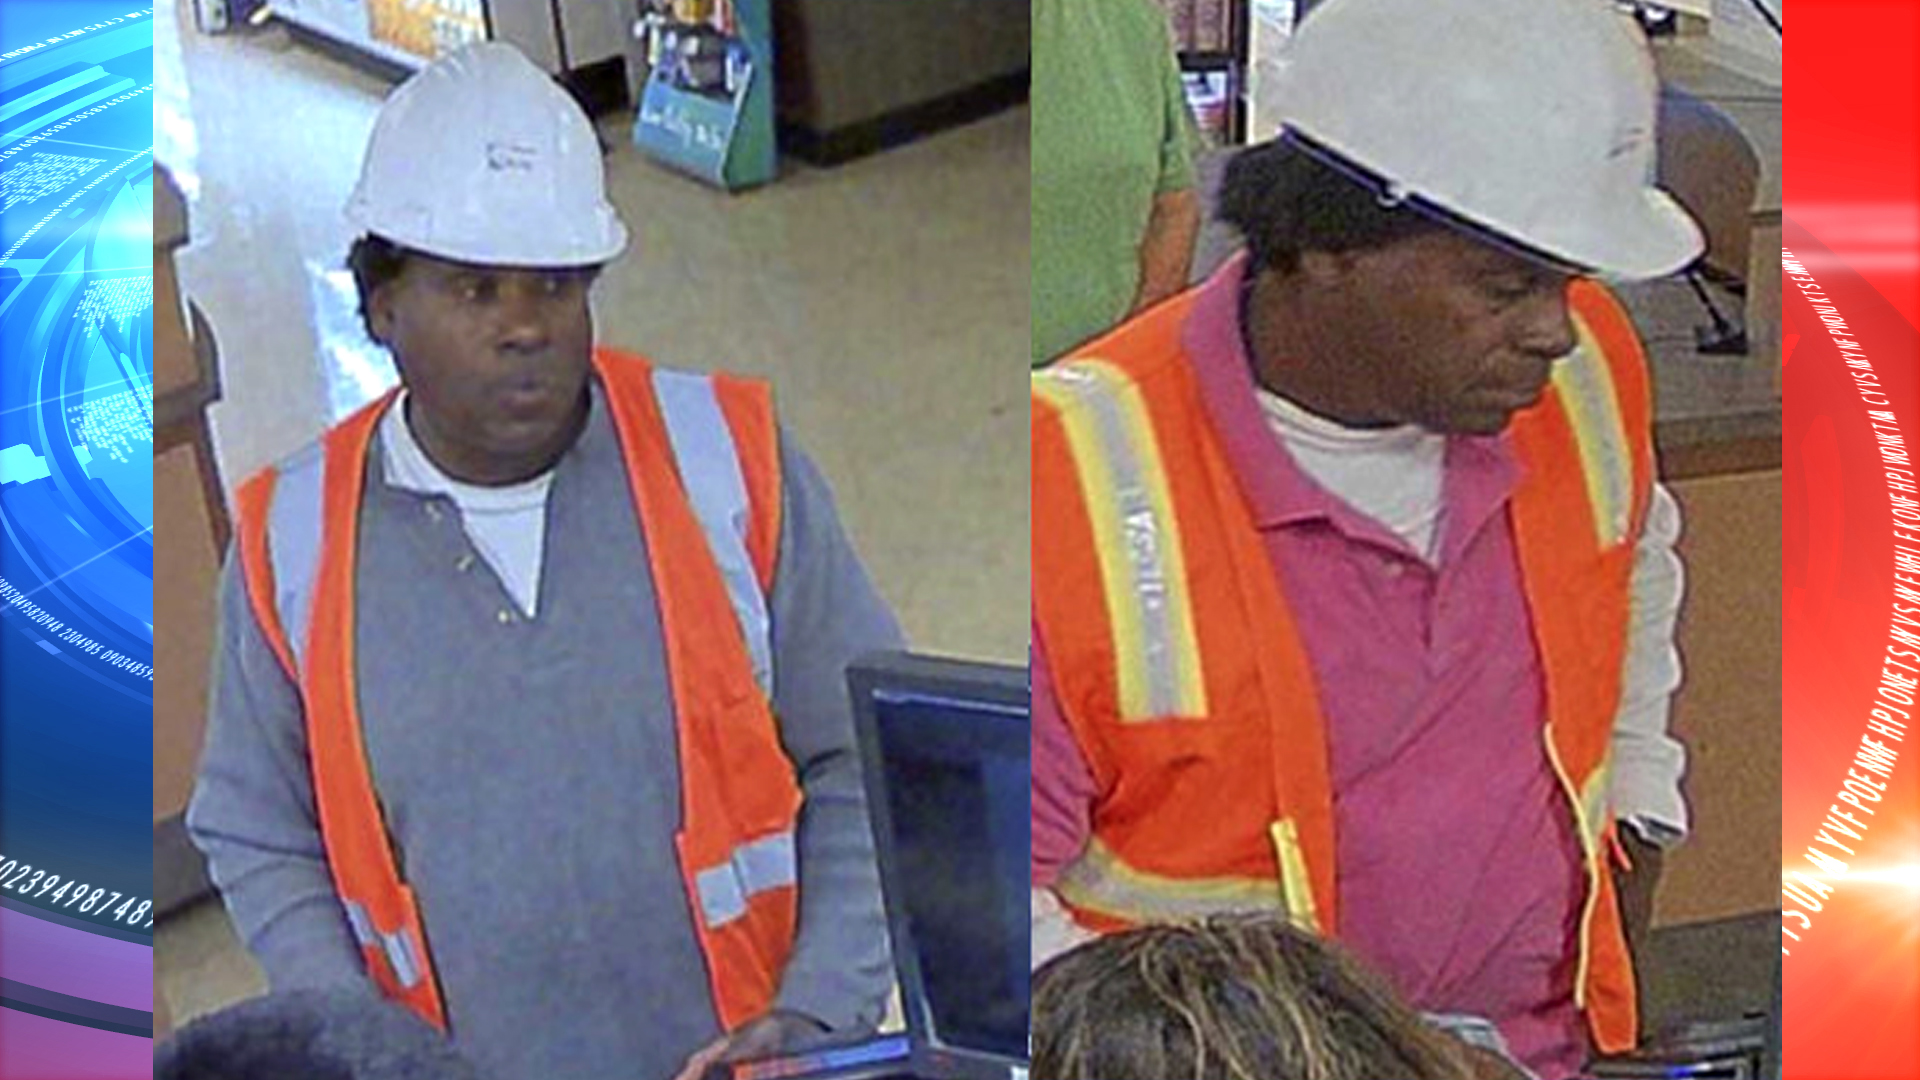 Man in construction worker disguise suspected in 10 of San Diego burglaries